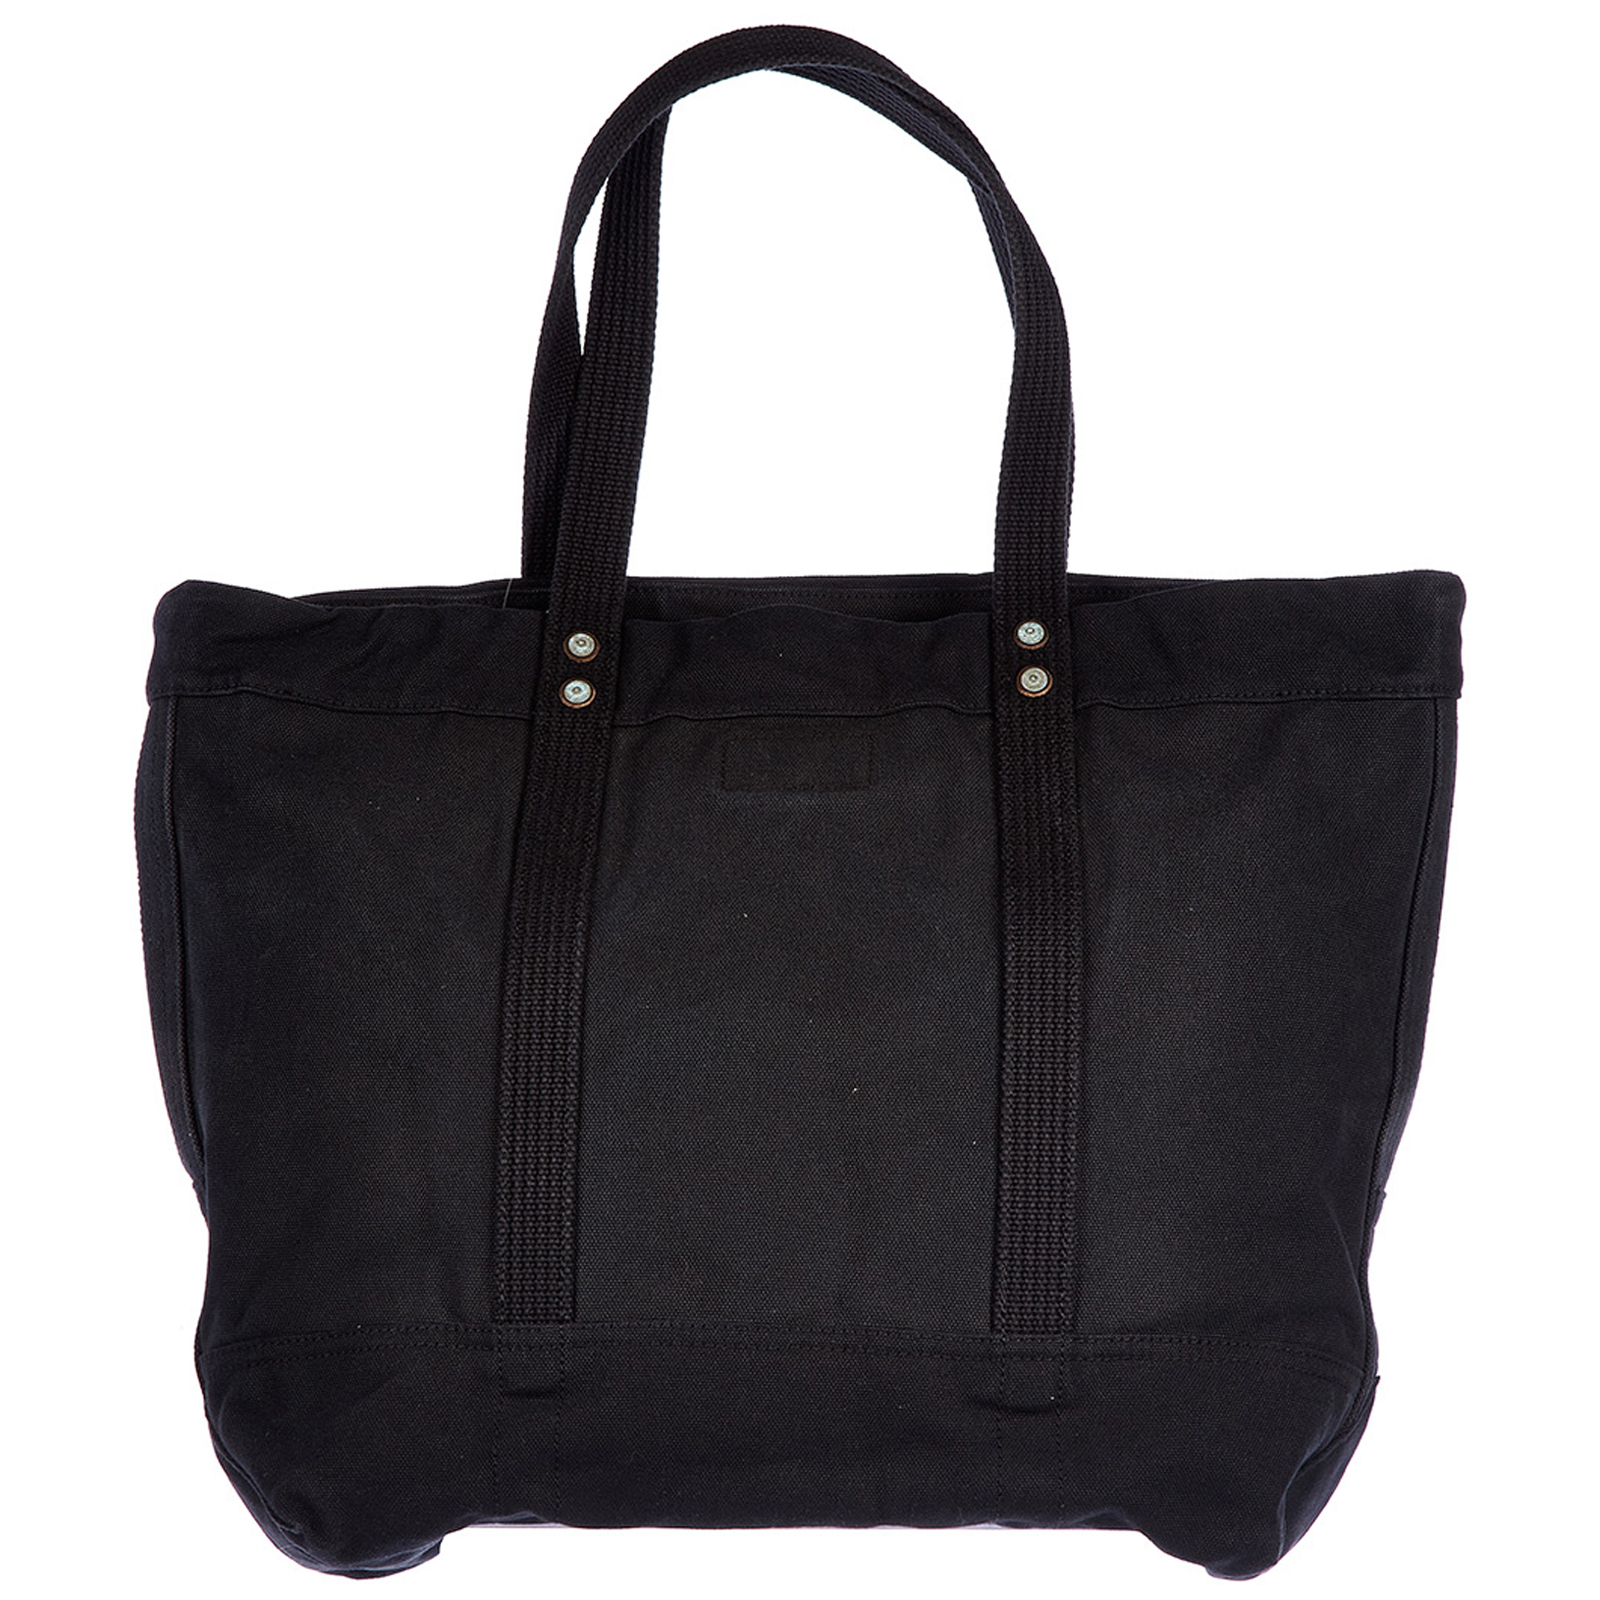 Sac à main homme shopping tote  canvas